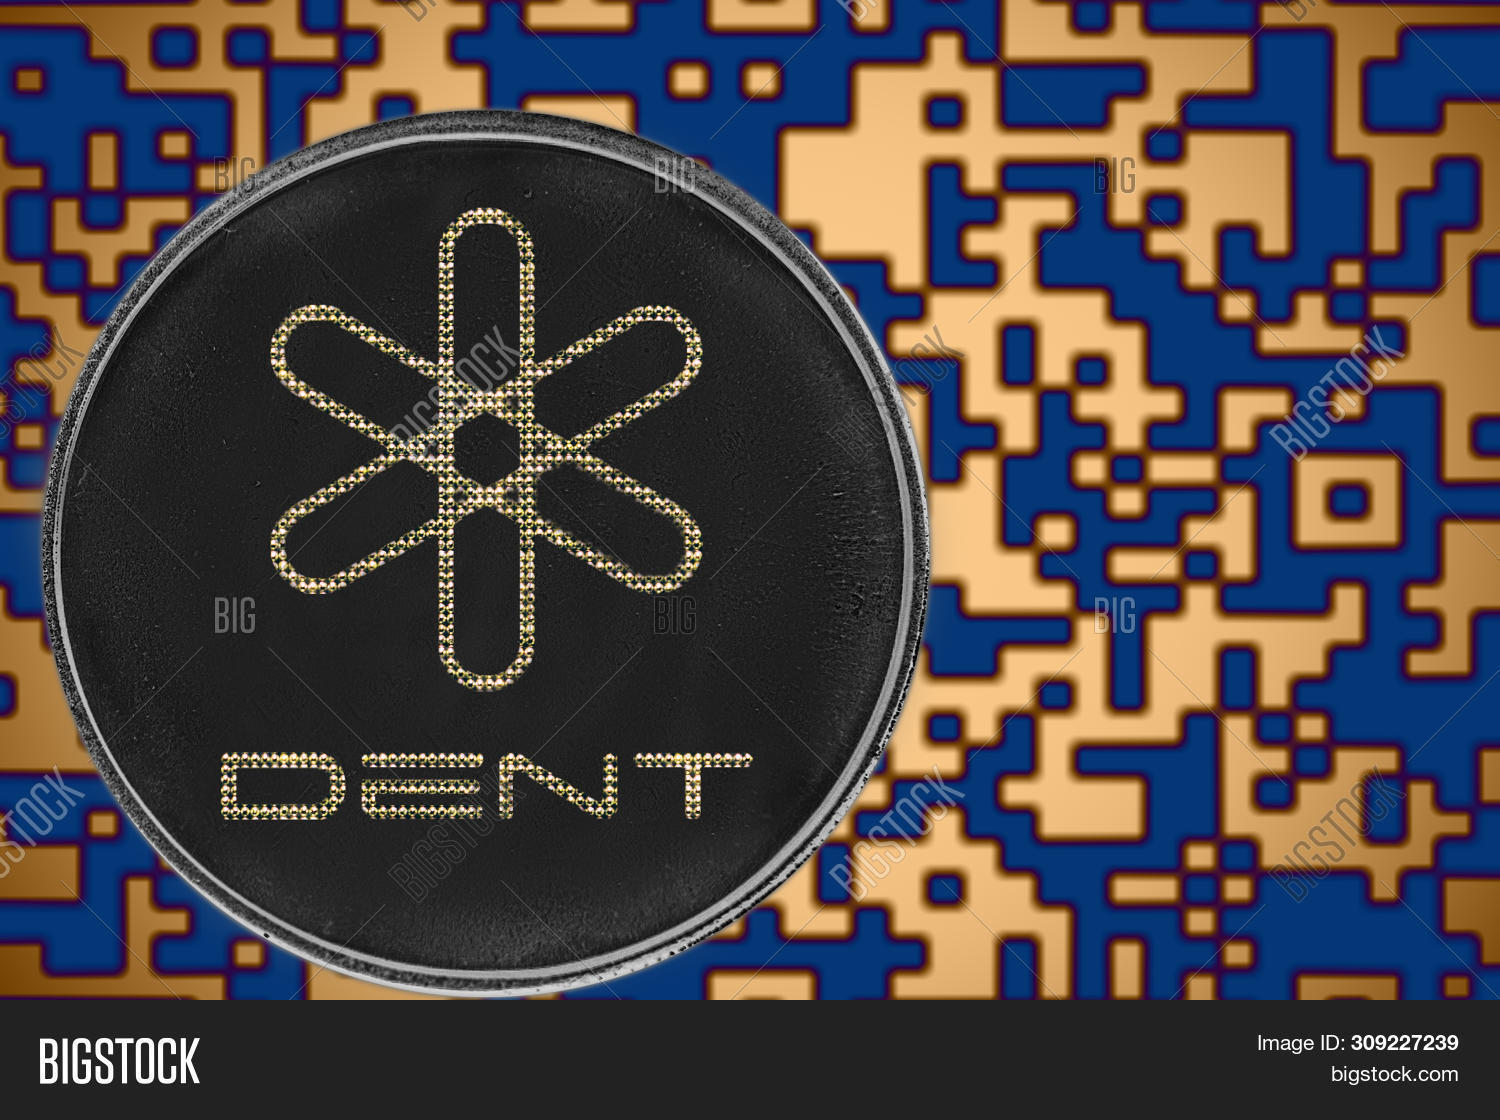 buy dent cryptocurrency